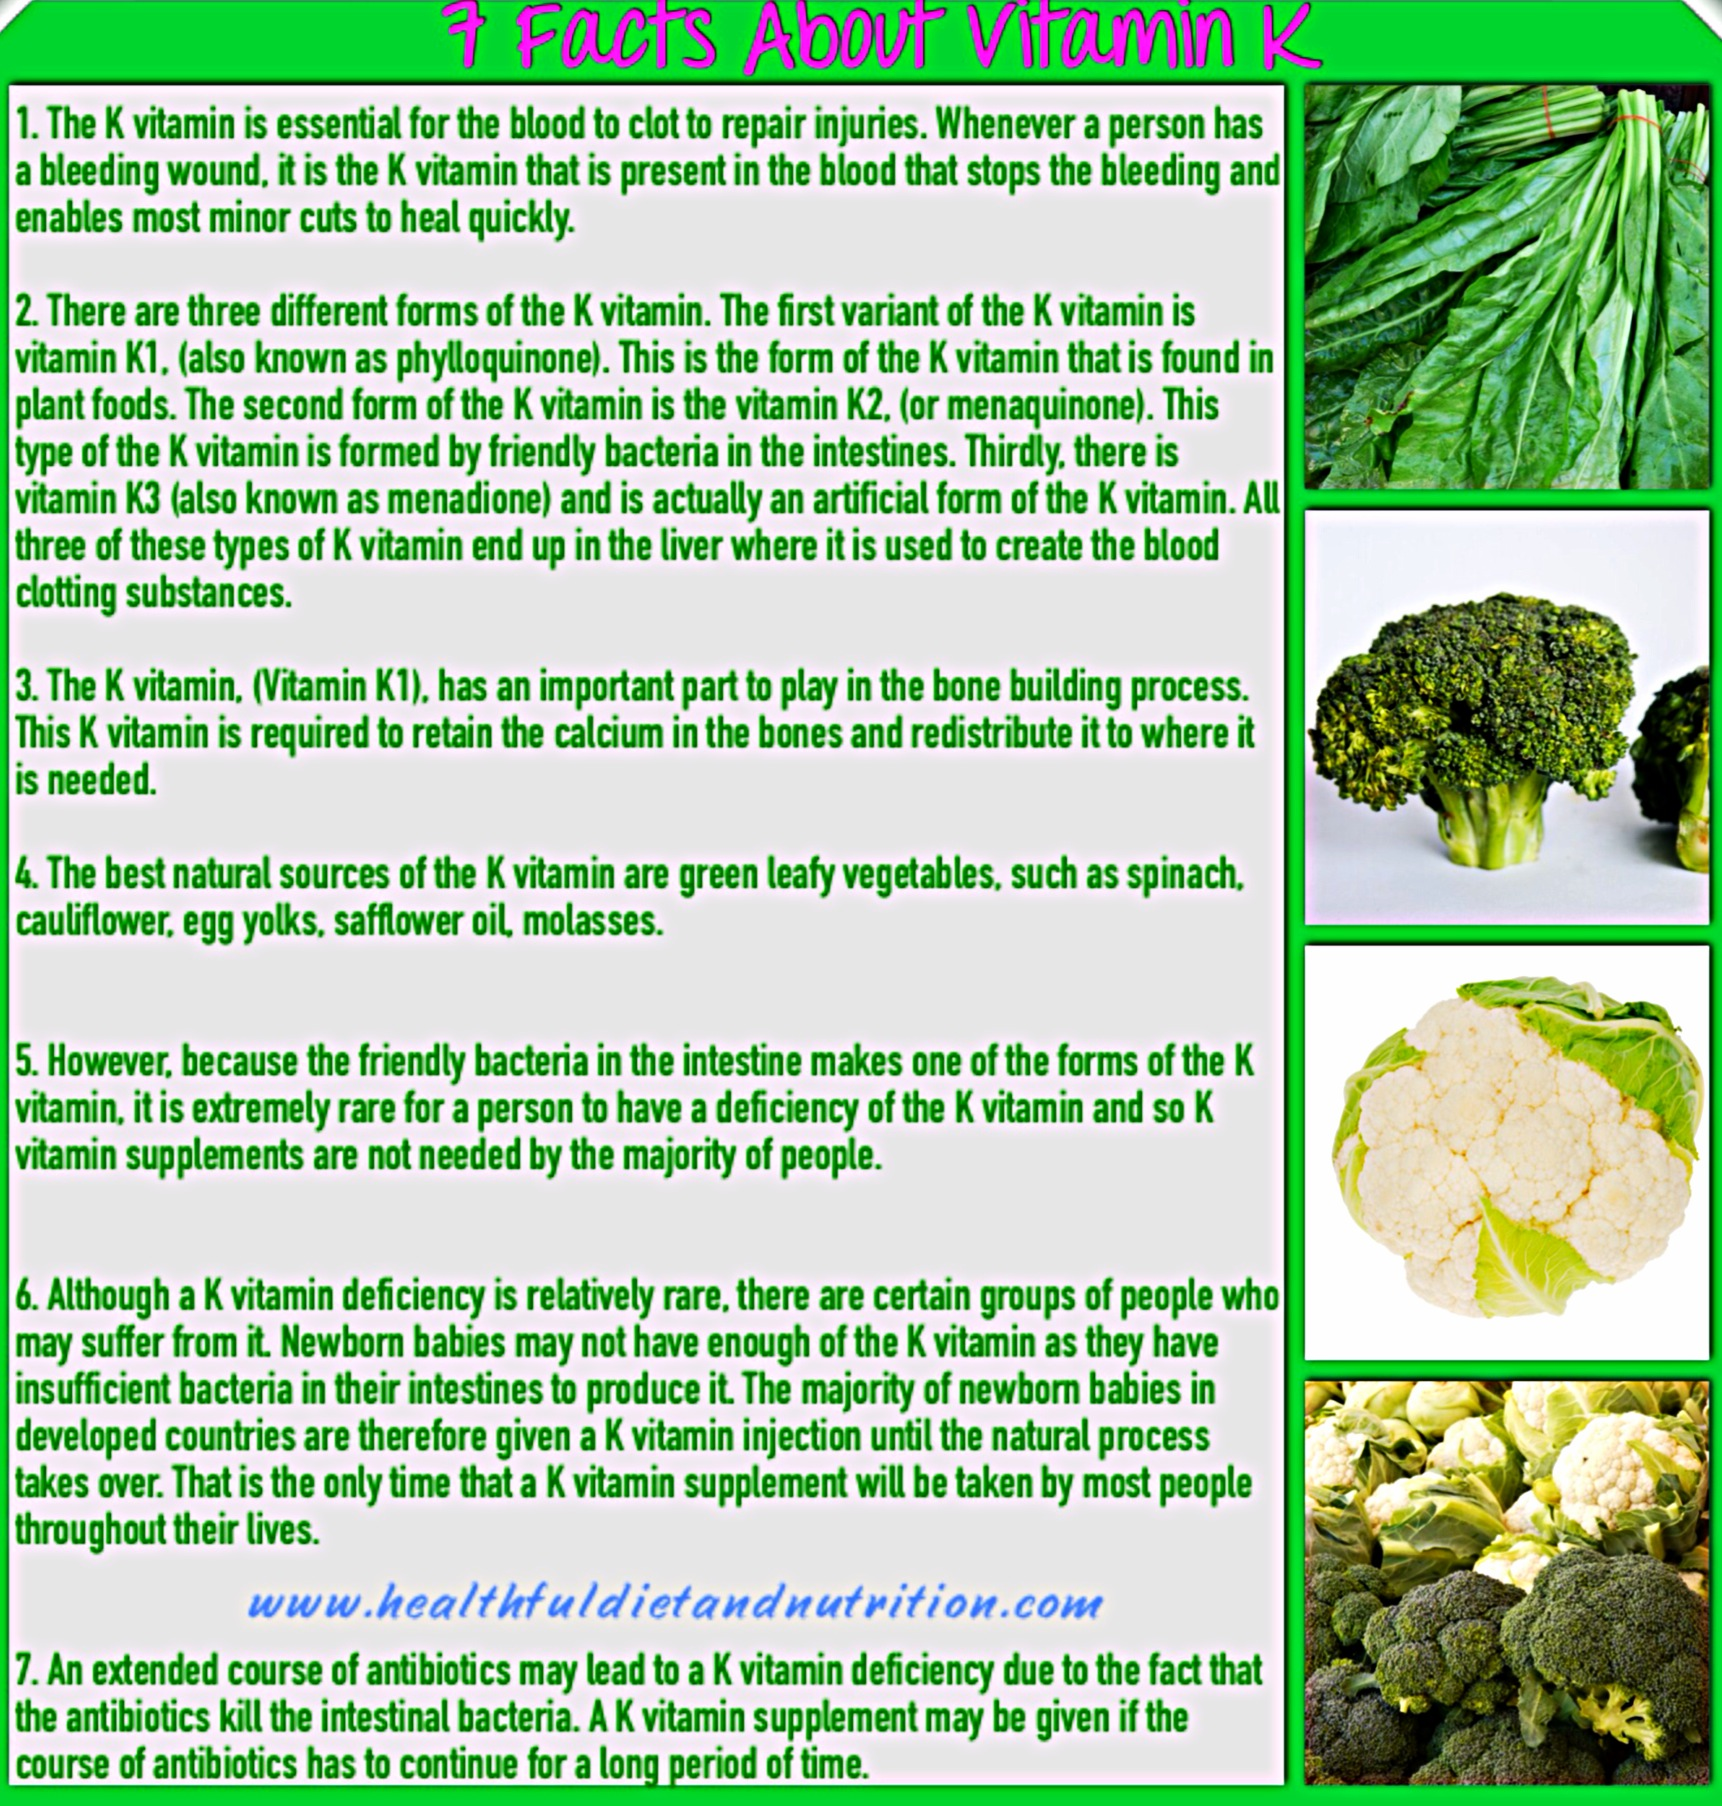 7 Facts About Vitamin K